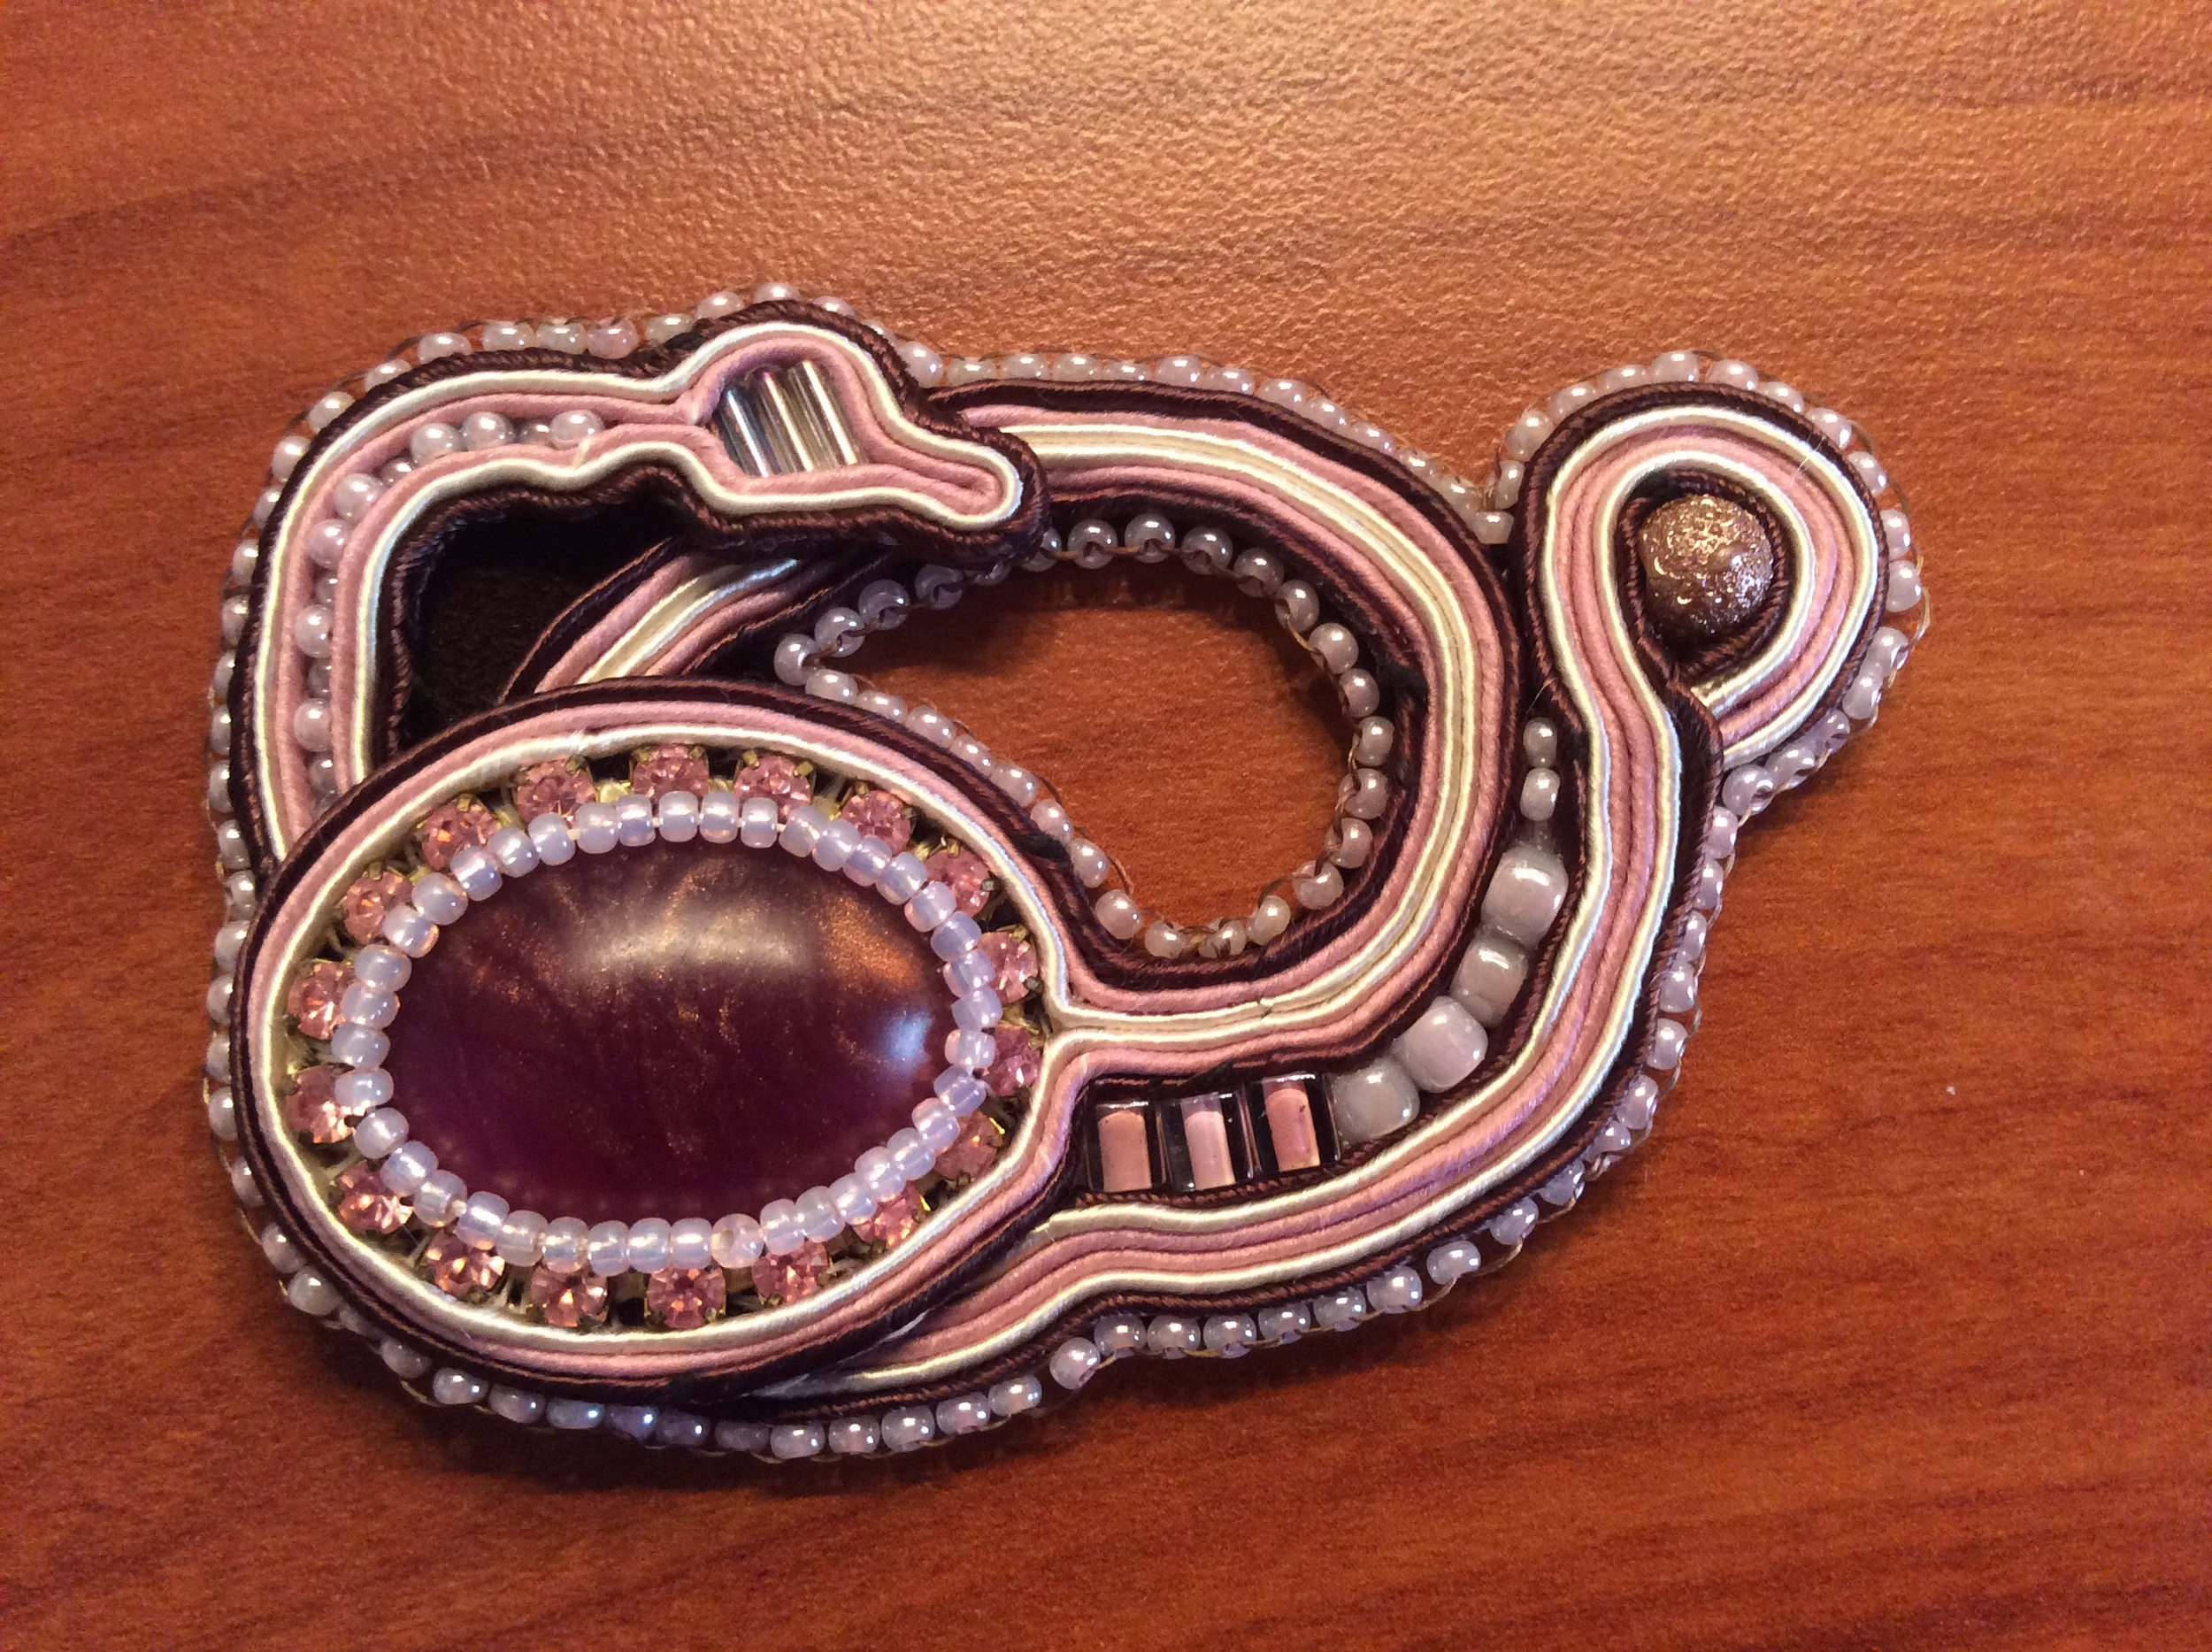 Soutache pendant with glass beads